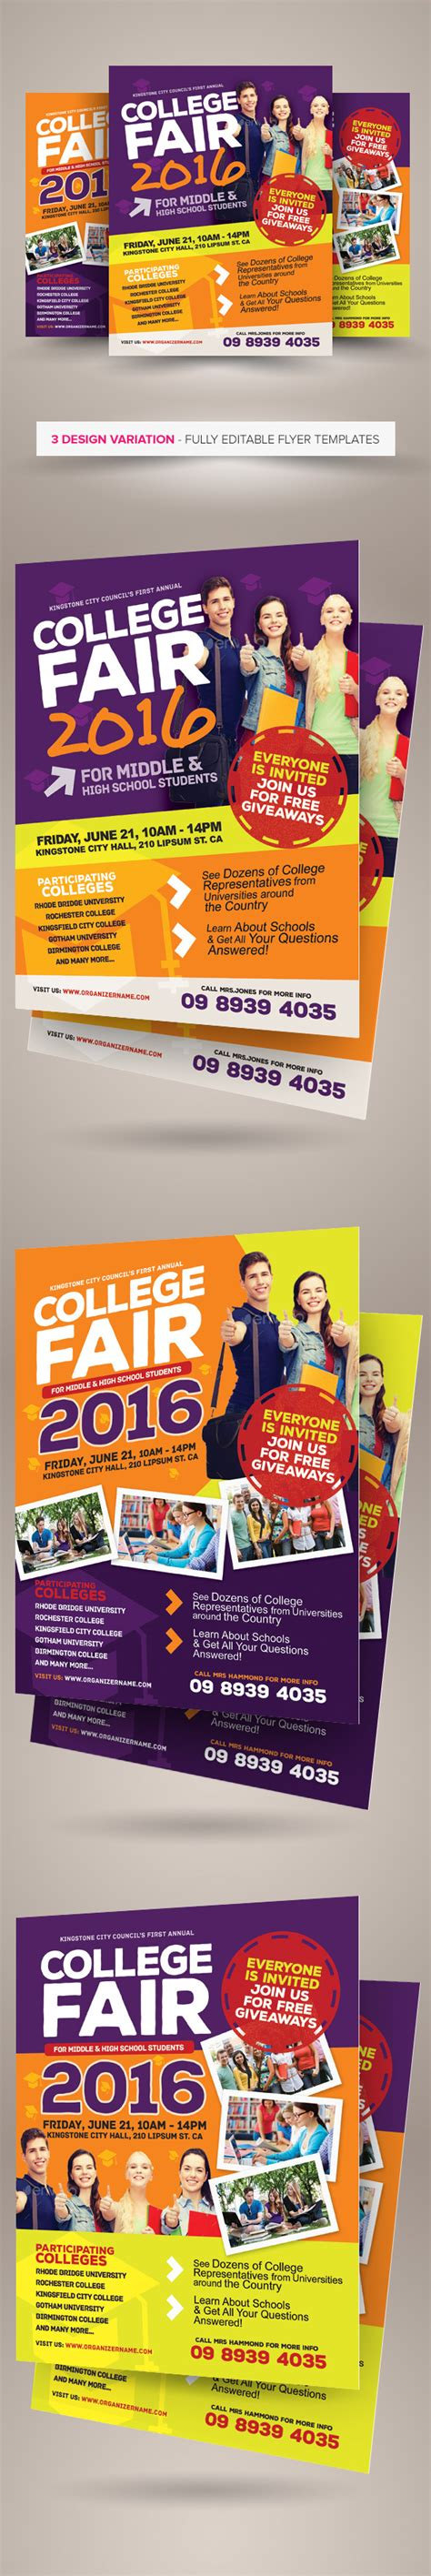 College Fair Flyer Templates On Behance College Fair Flyer Template